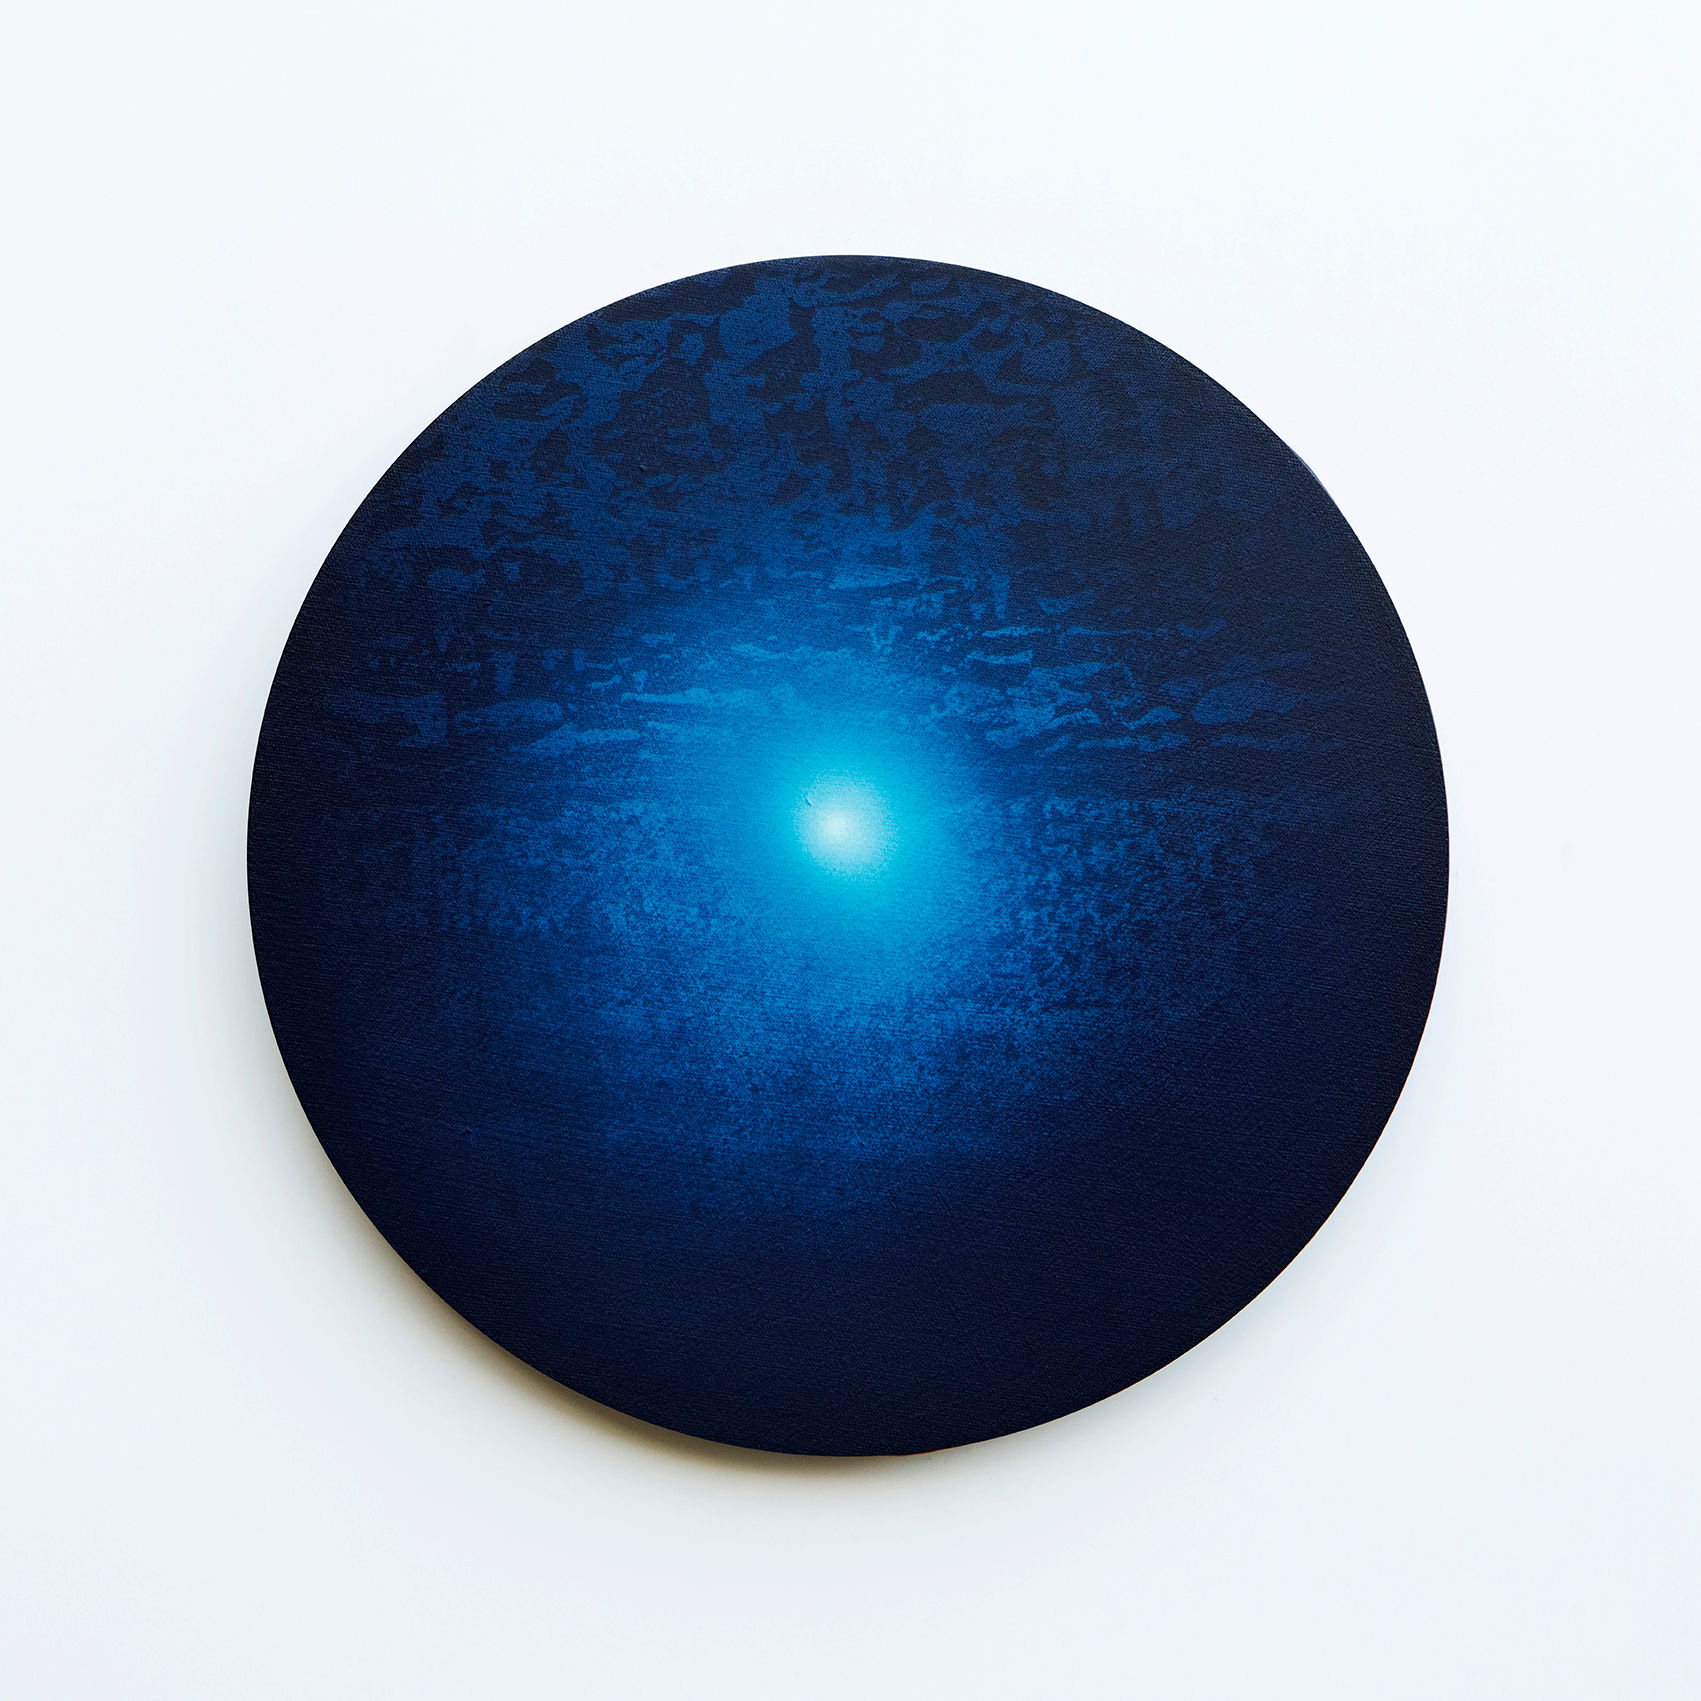 WATERSCAPE_내 안의 바깥 15, Diameter 40cm, Traditional pigment, water-print, water-drawing on canvas, 2018